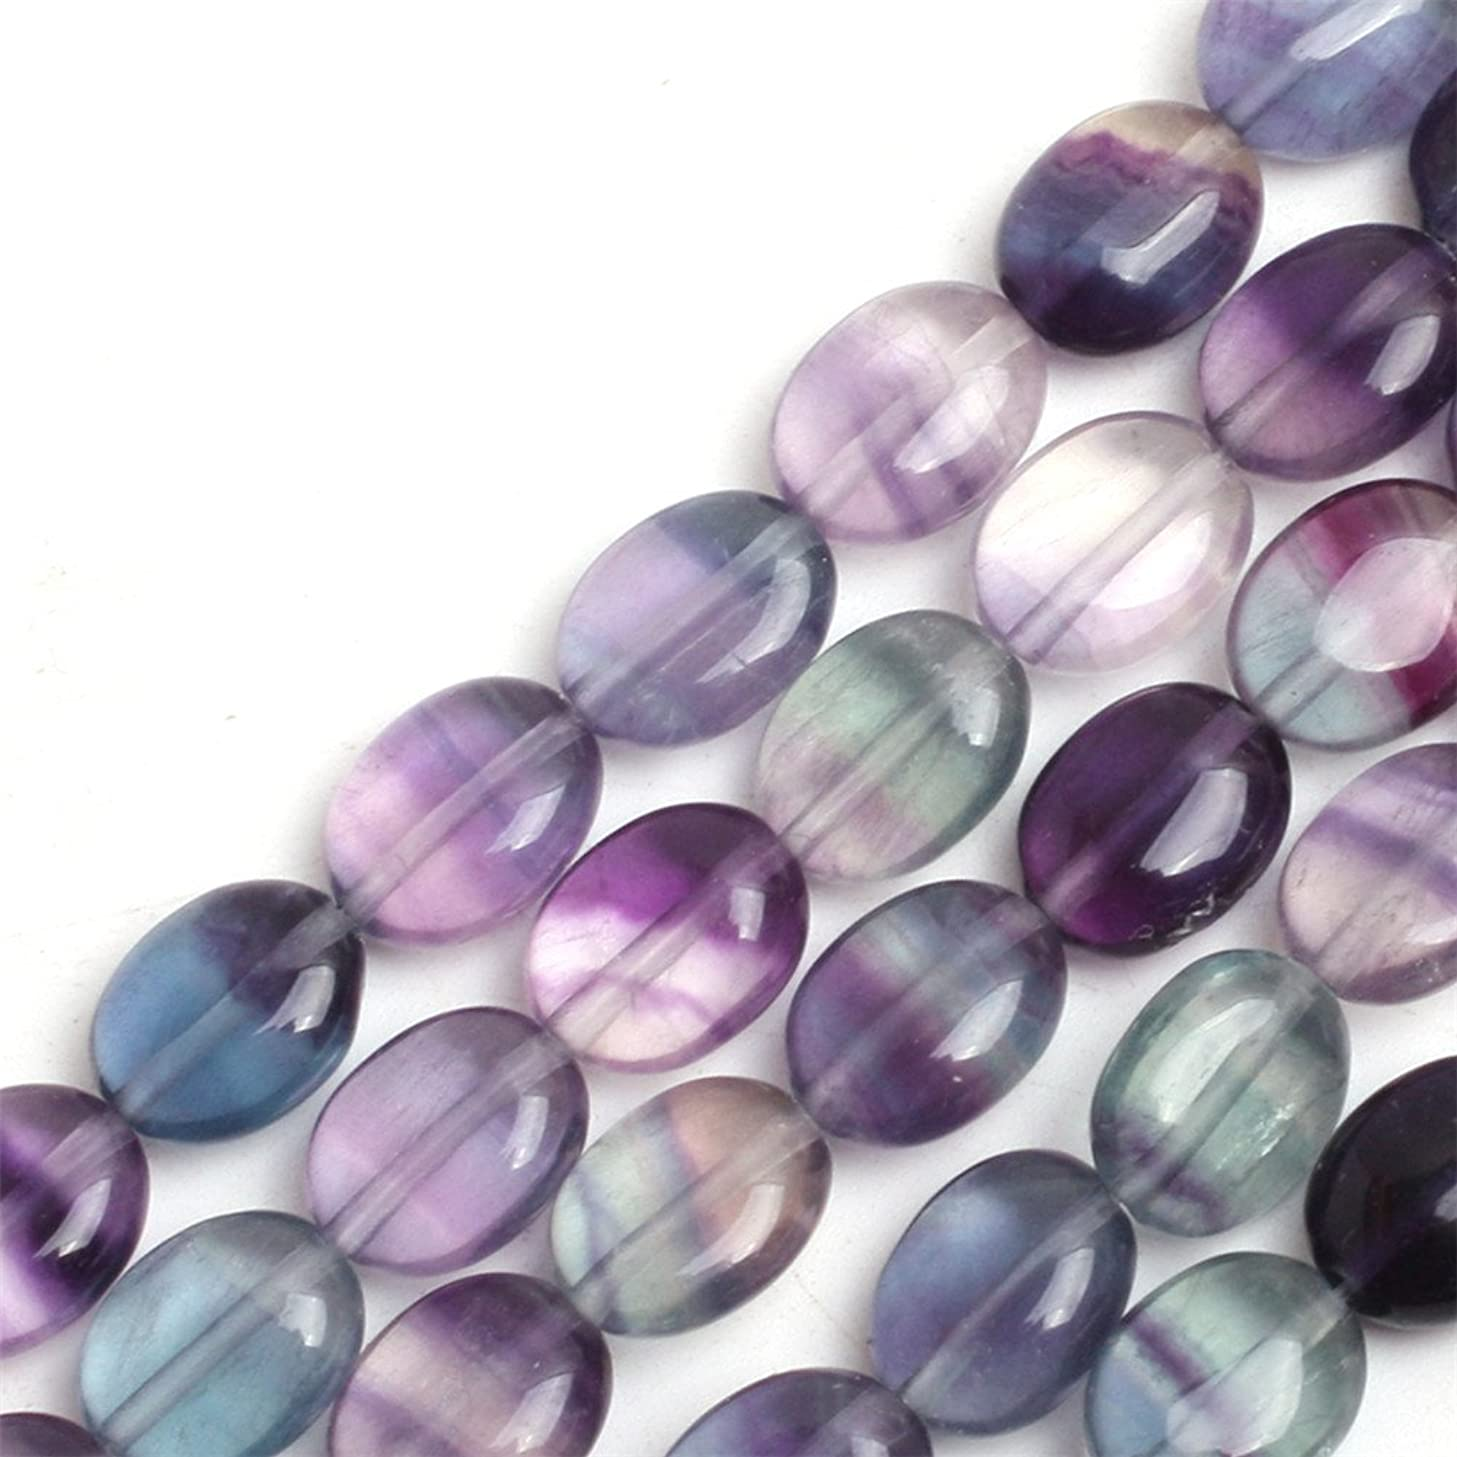 GEM-inside Fluorite Agate Gemstone Loose Beads Natural 8x10mm Smooth Crystal Energy Stone Power For Jewelry Making 15''